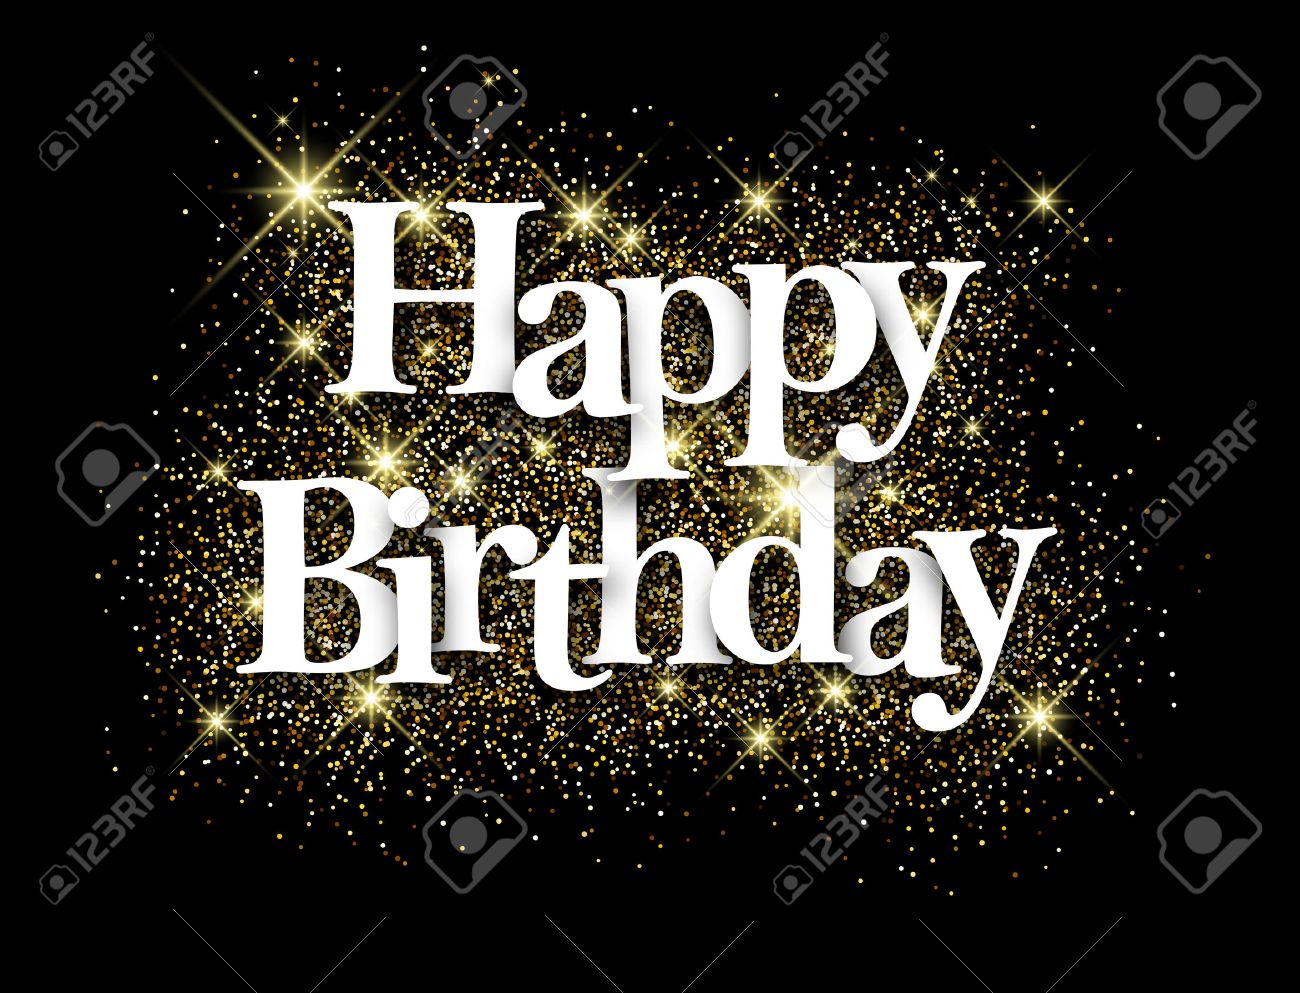 Happy birthday black background with shining sand. Vector paper illustration. - 56446651